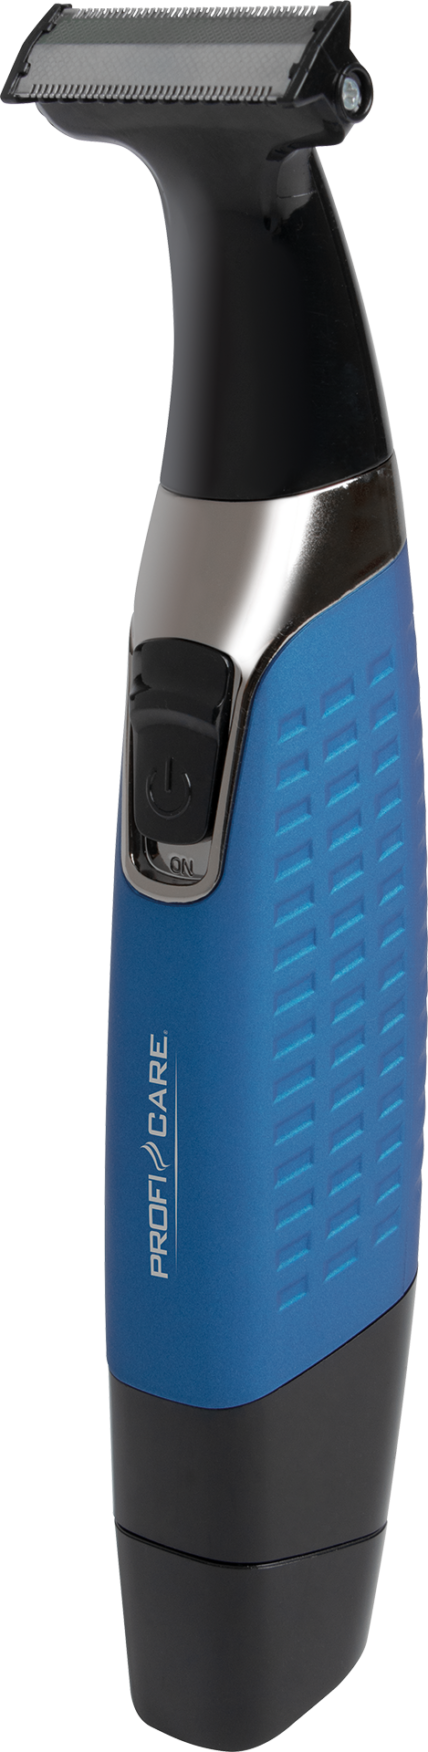 ProfiCare Body Hair Trimmer PC-BHT 3074 Blue/Black